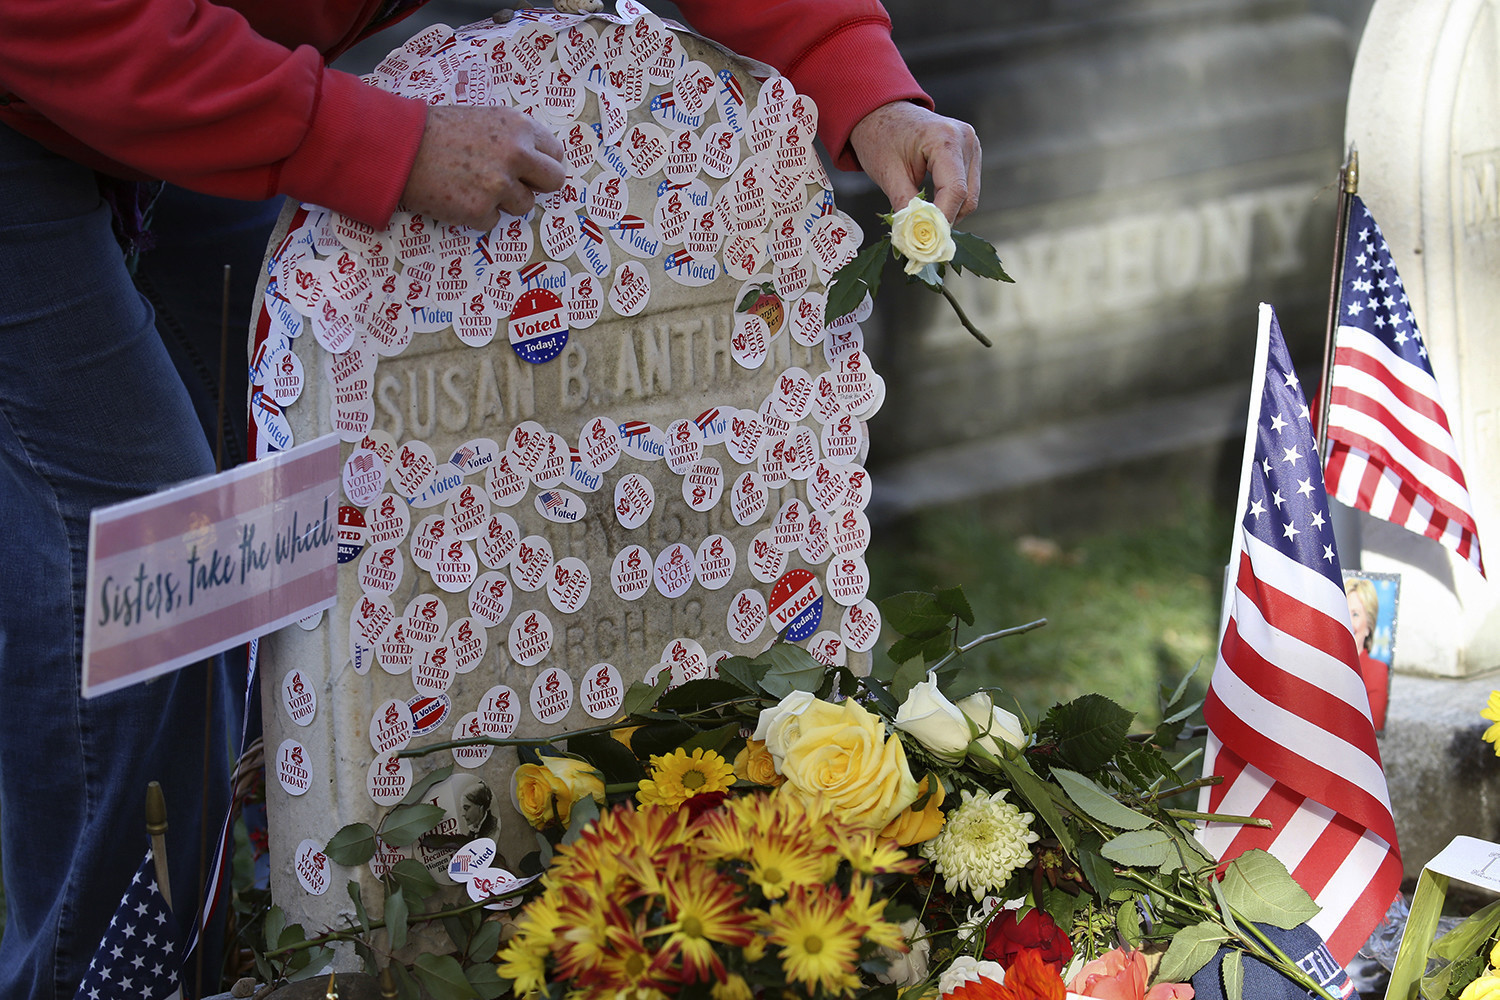 Steady crowd marks Election Day at Susan B Anthonys grave  Chicago Tribune